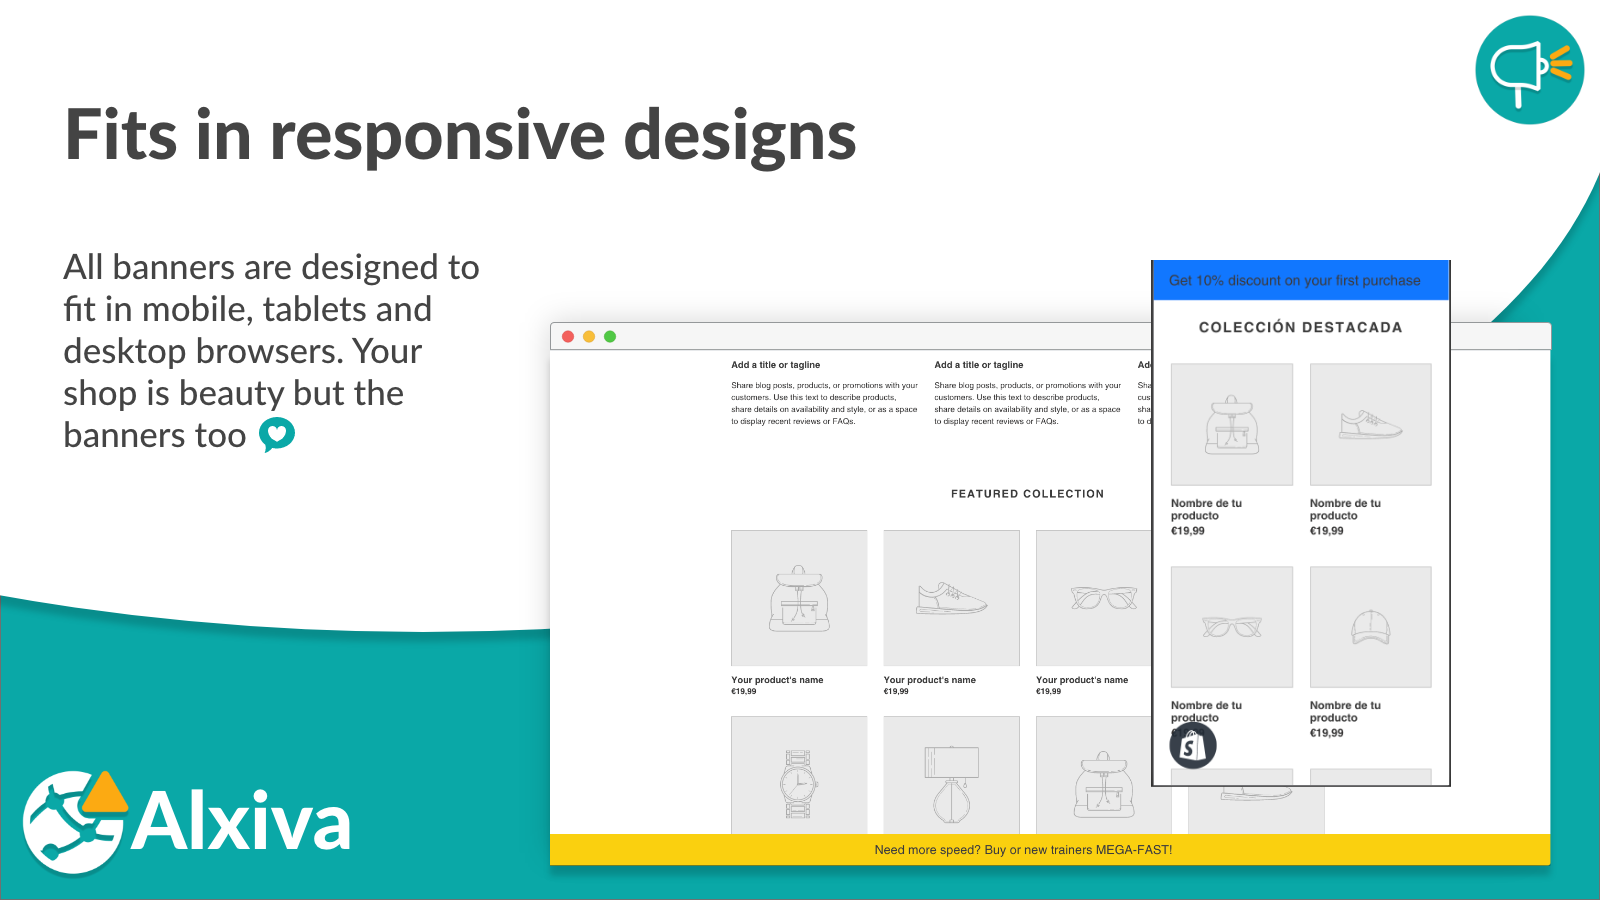 Fits in responsive designs